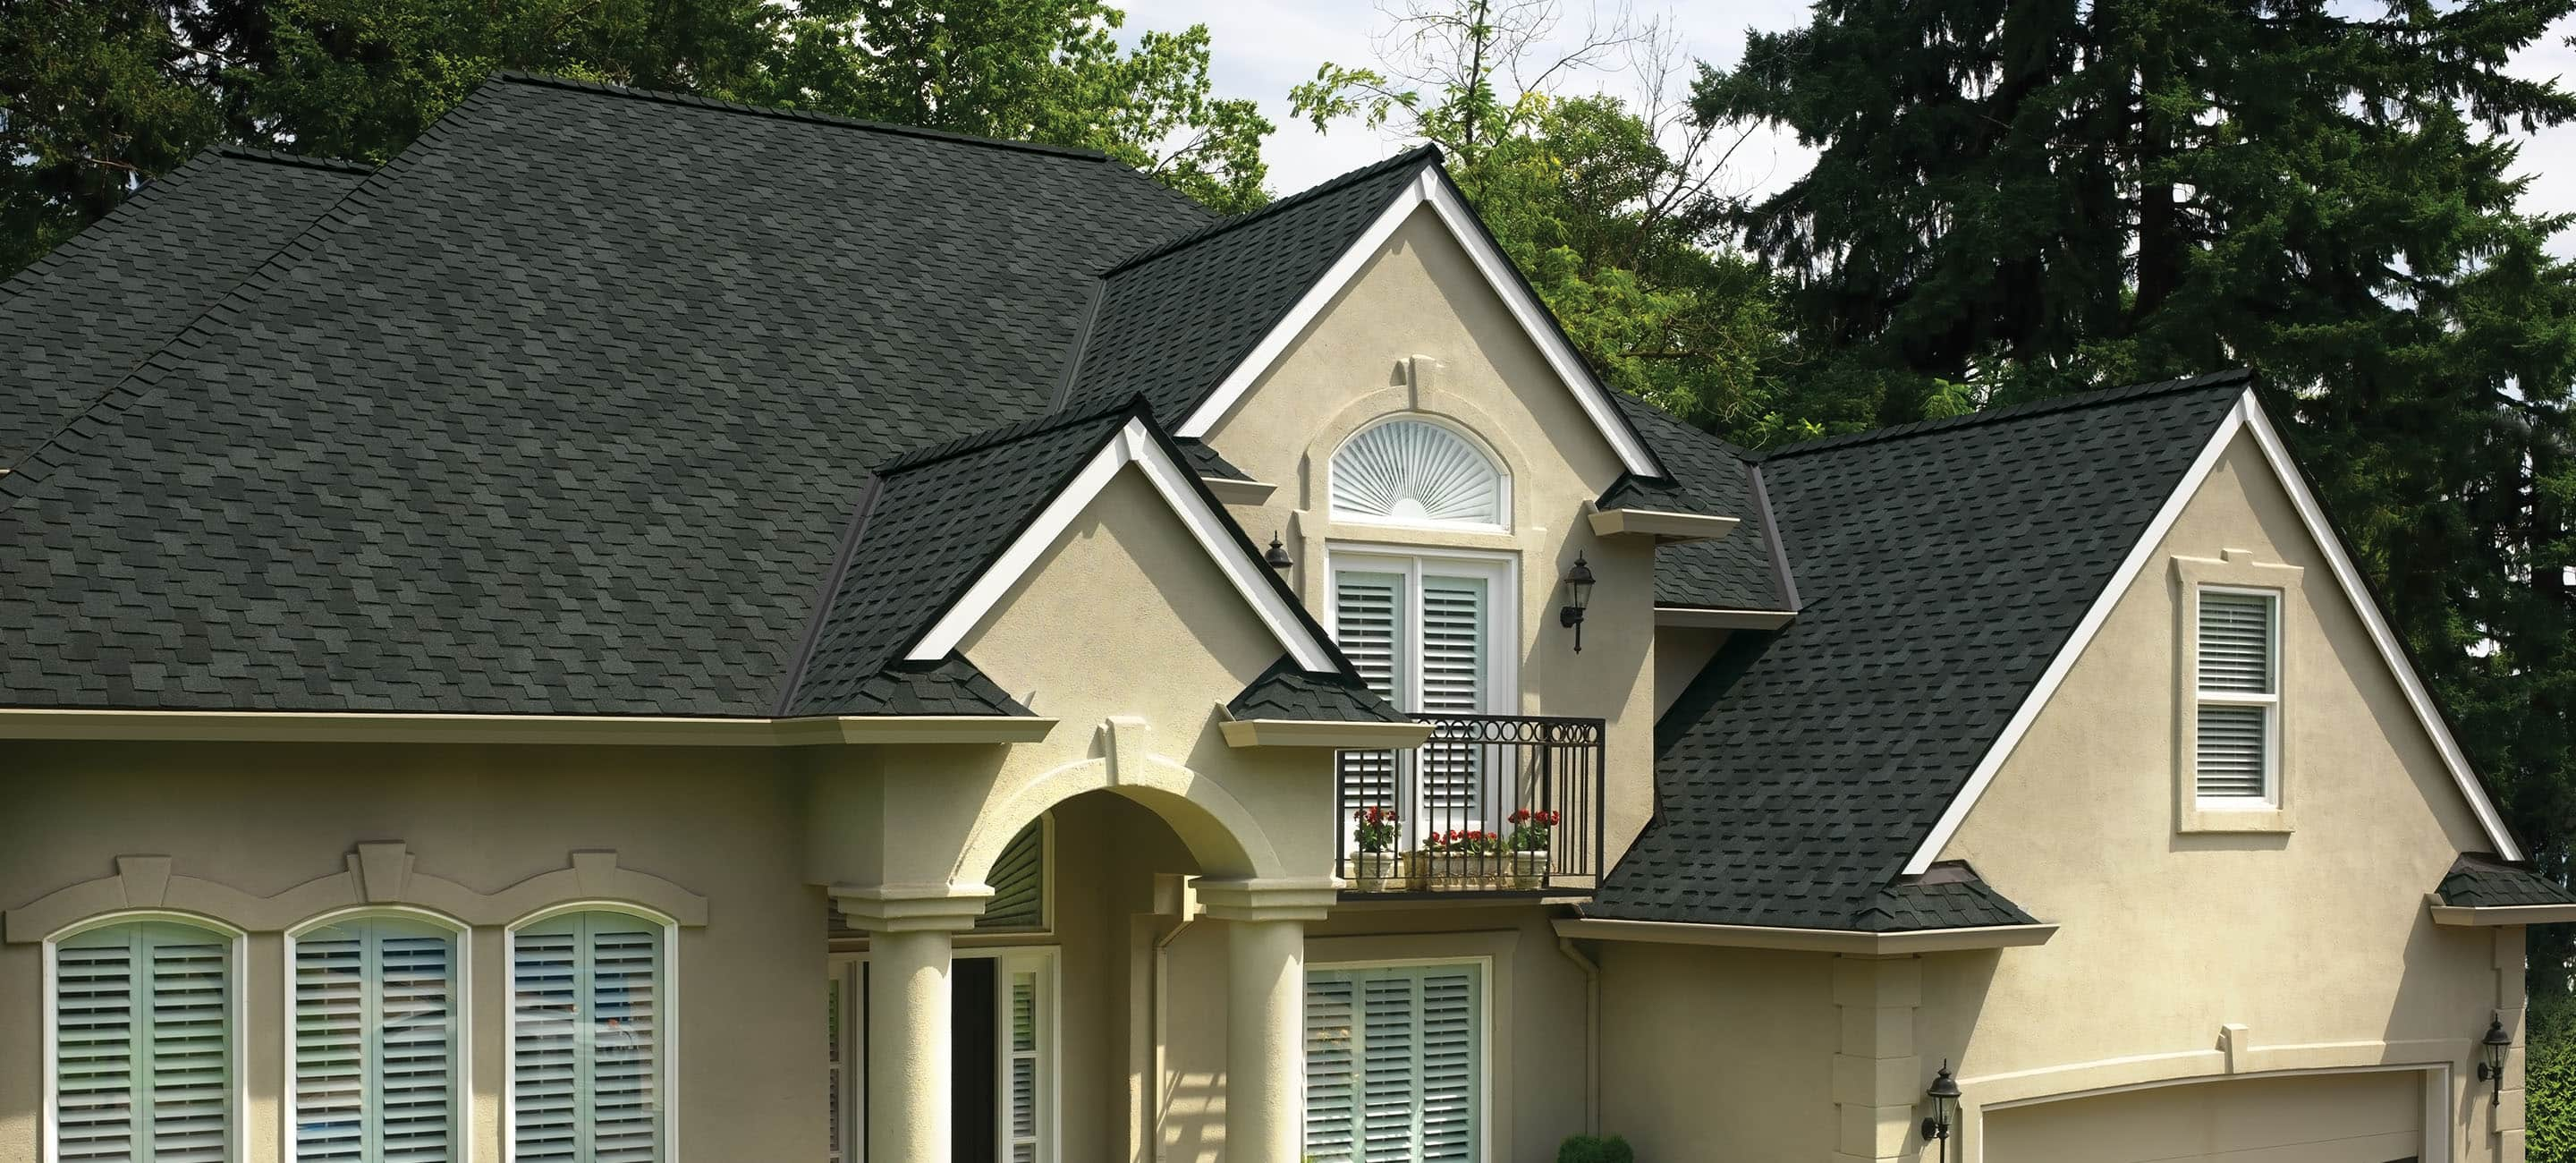 Gaf Grand Sequoia Roofing Shingles